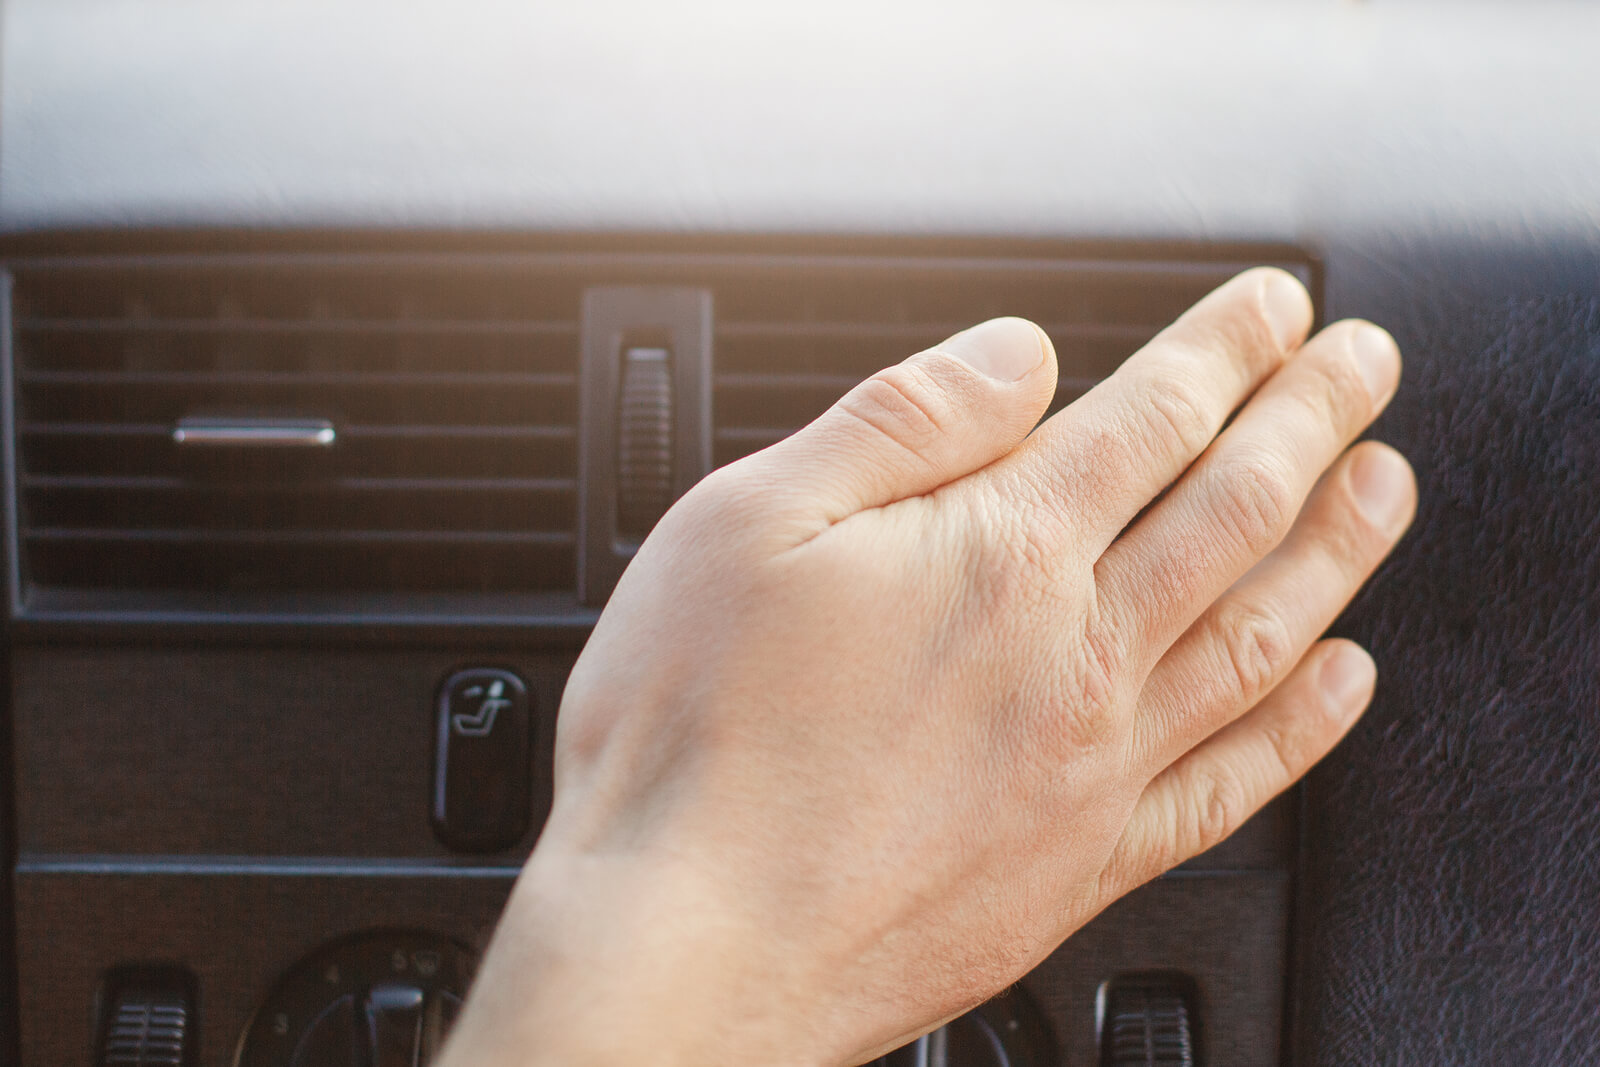 Driver's hand checking the temperature of air coming out of air conditioning unit